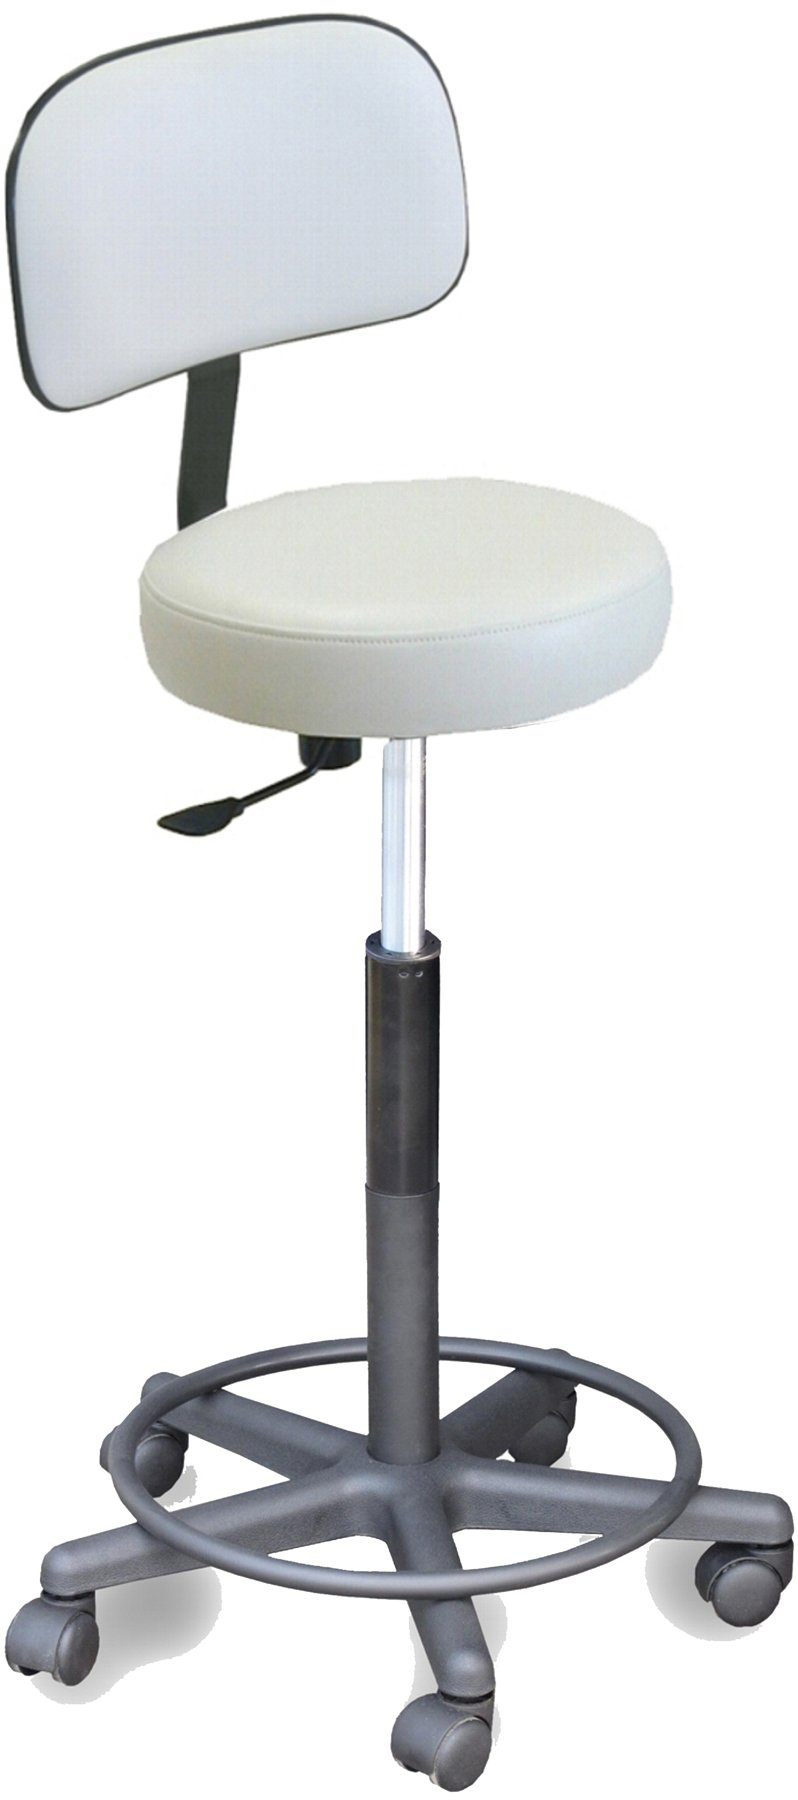 910E Medical Physician White Stool w/Adjustable heigth & Back Support Made in USA by Dina Meri